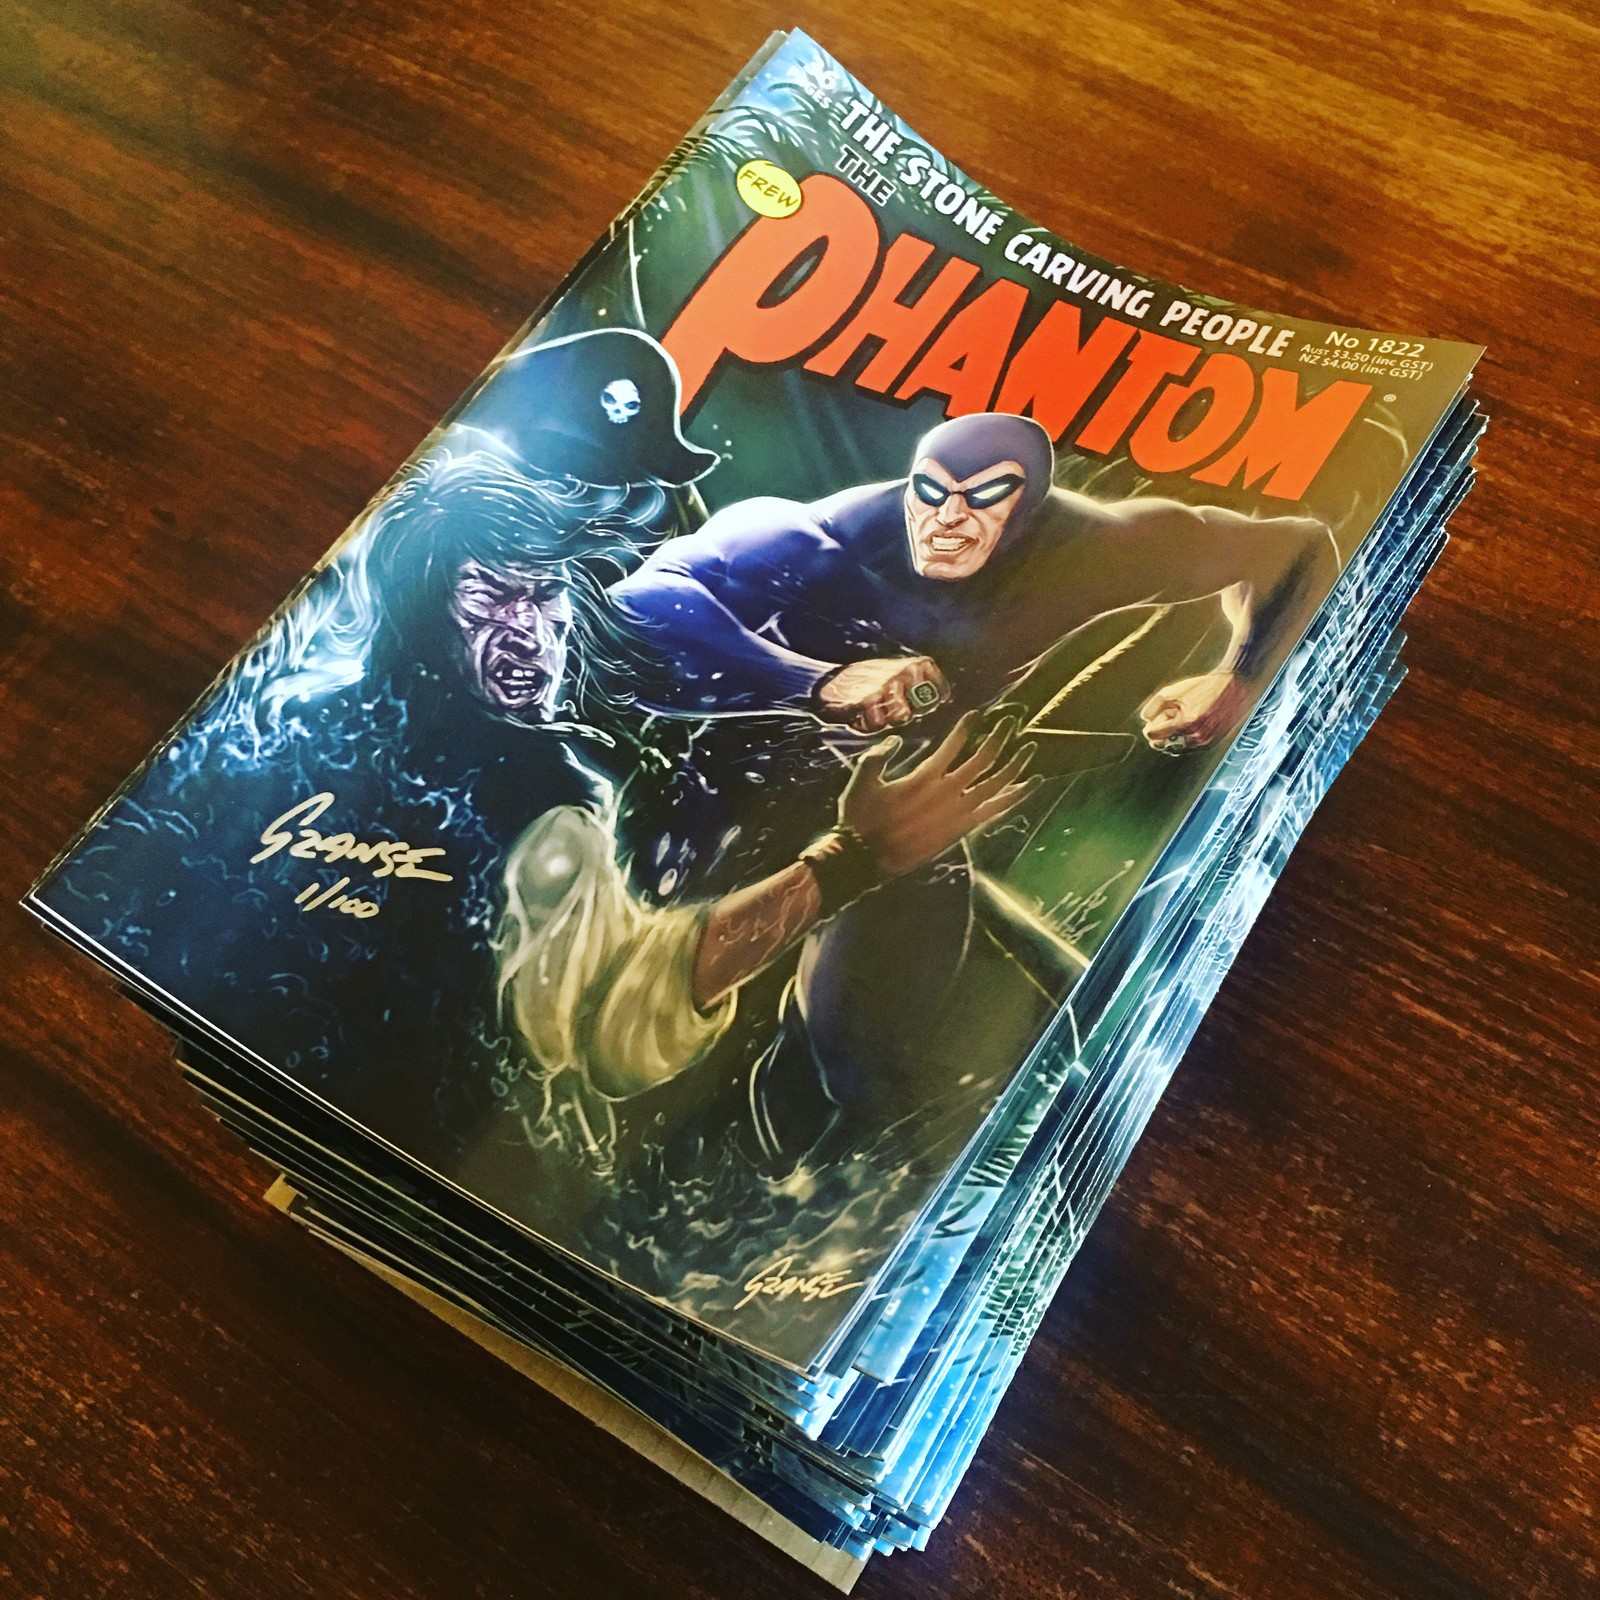 Final Printed Issue of The Phantom #1822 (2018)